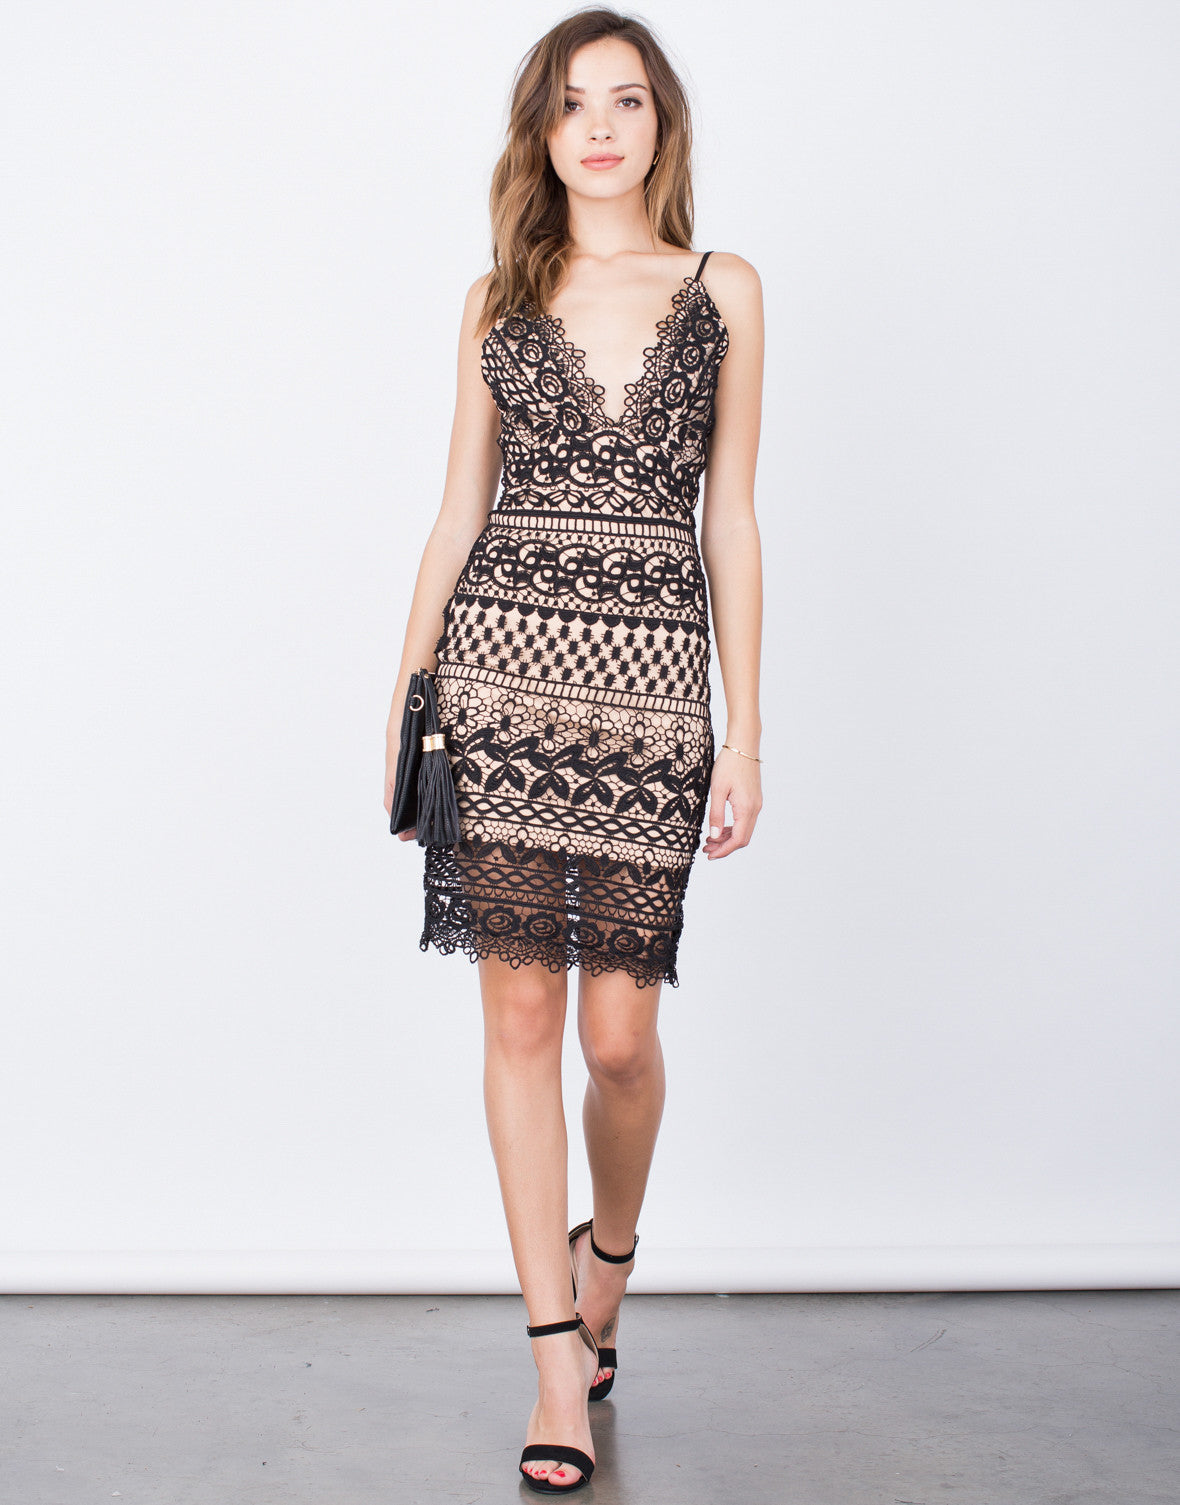 Front View of Take the Night Away Dress